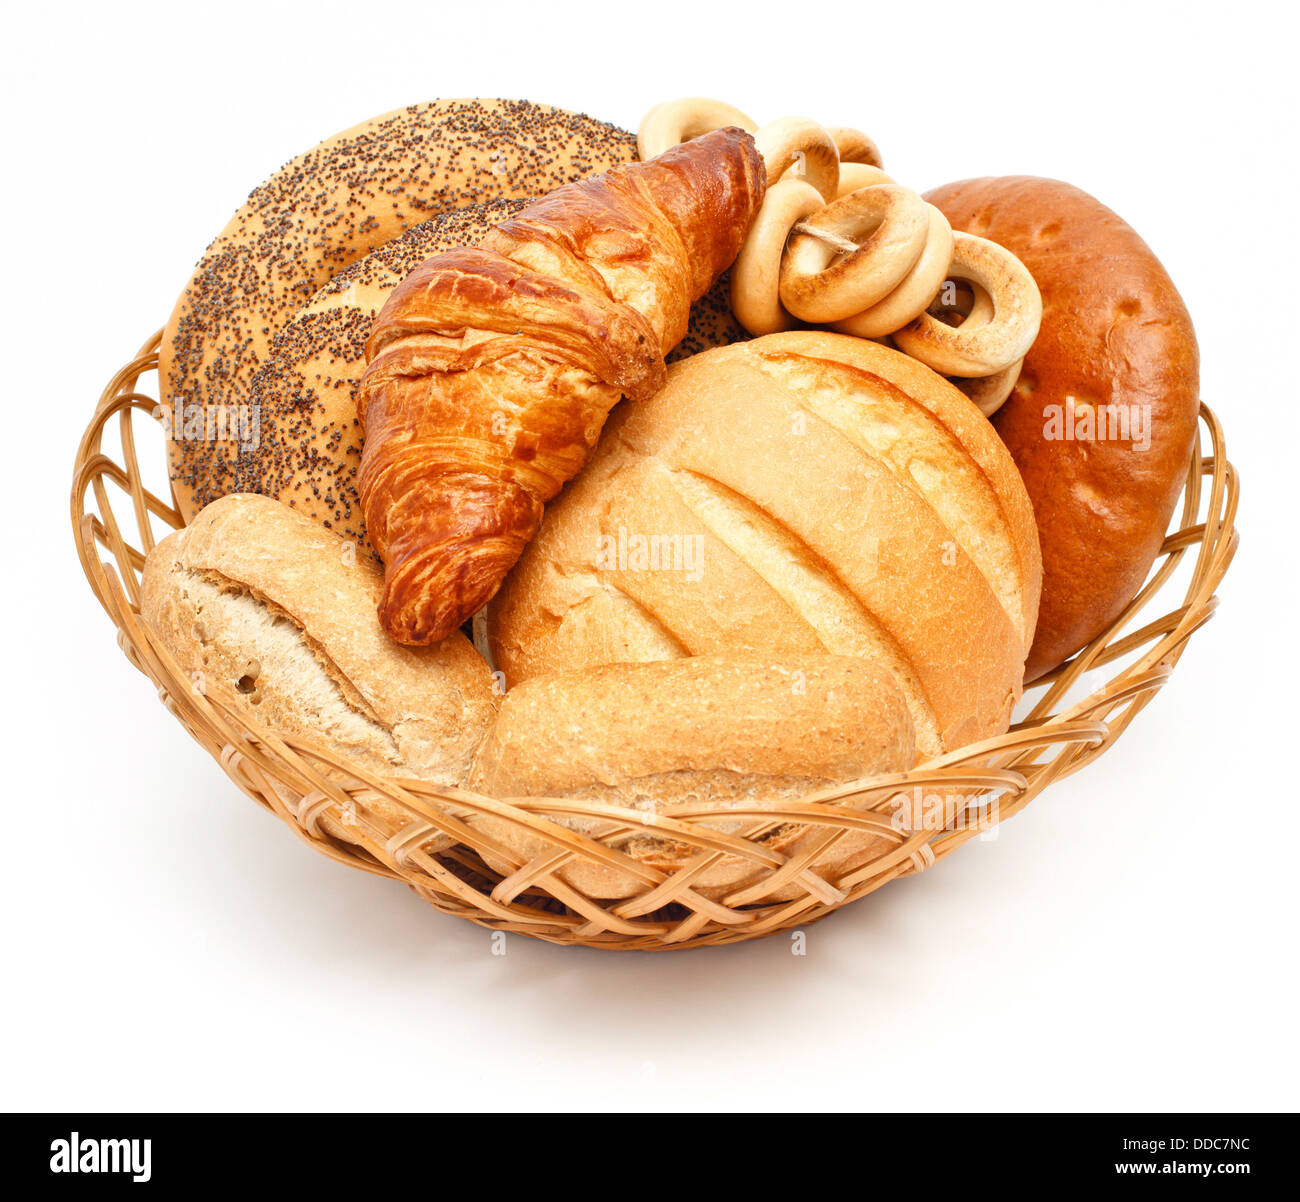 Arrangement of bread in basket on white background - Stock Image